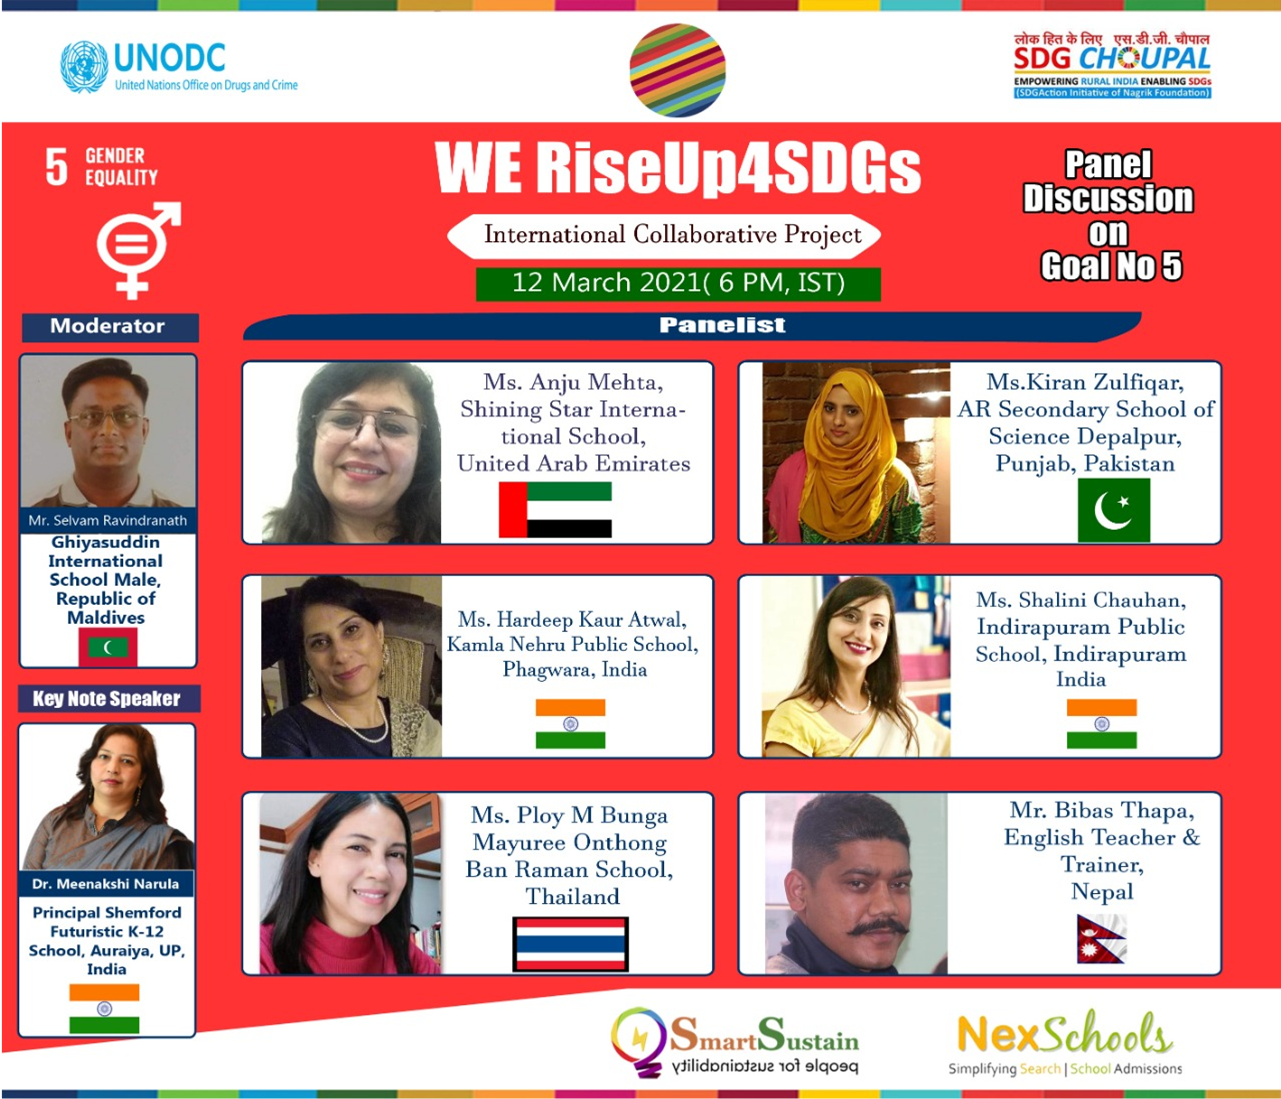 SDG5 Gender Equality, NexSchools is Media Partner for the RiseUp4SDGs, Sustainable Development Goals Panel Discussion Goal 5